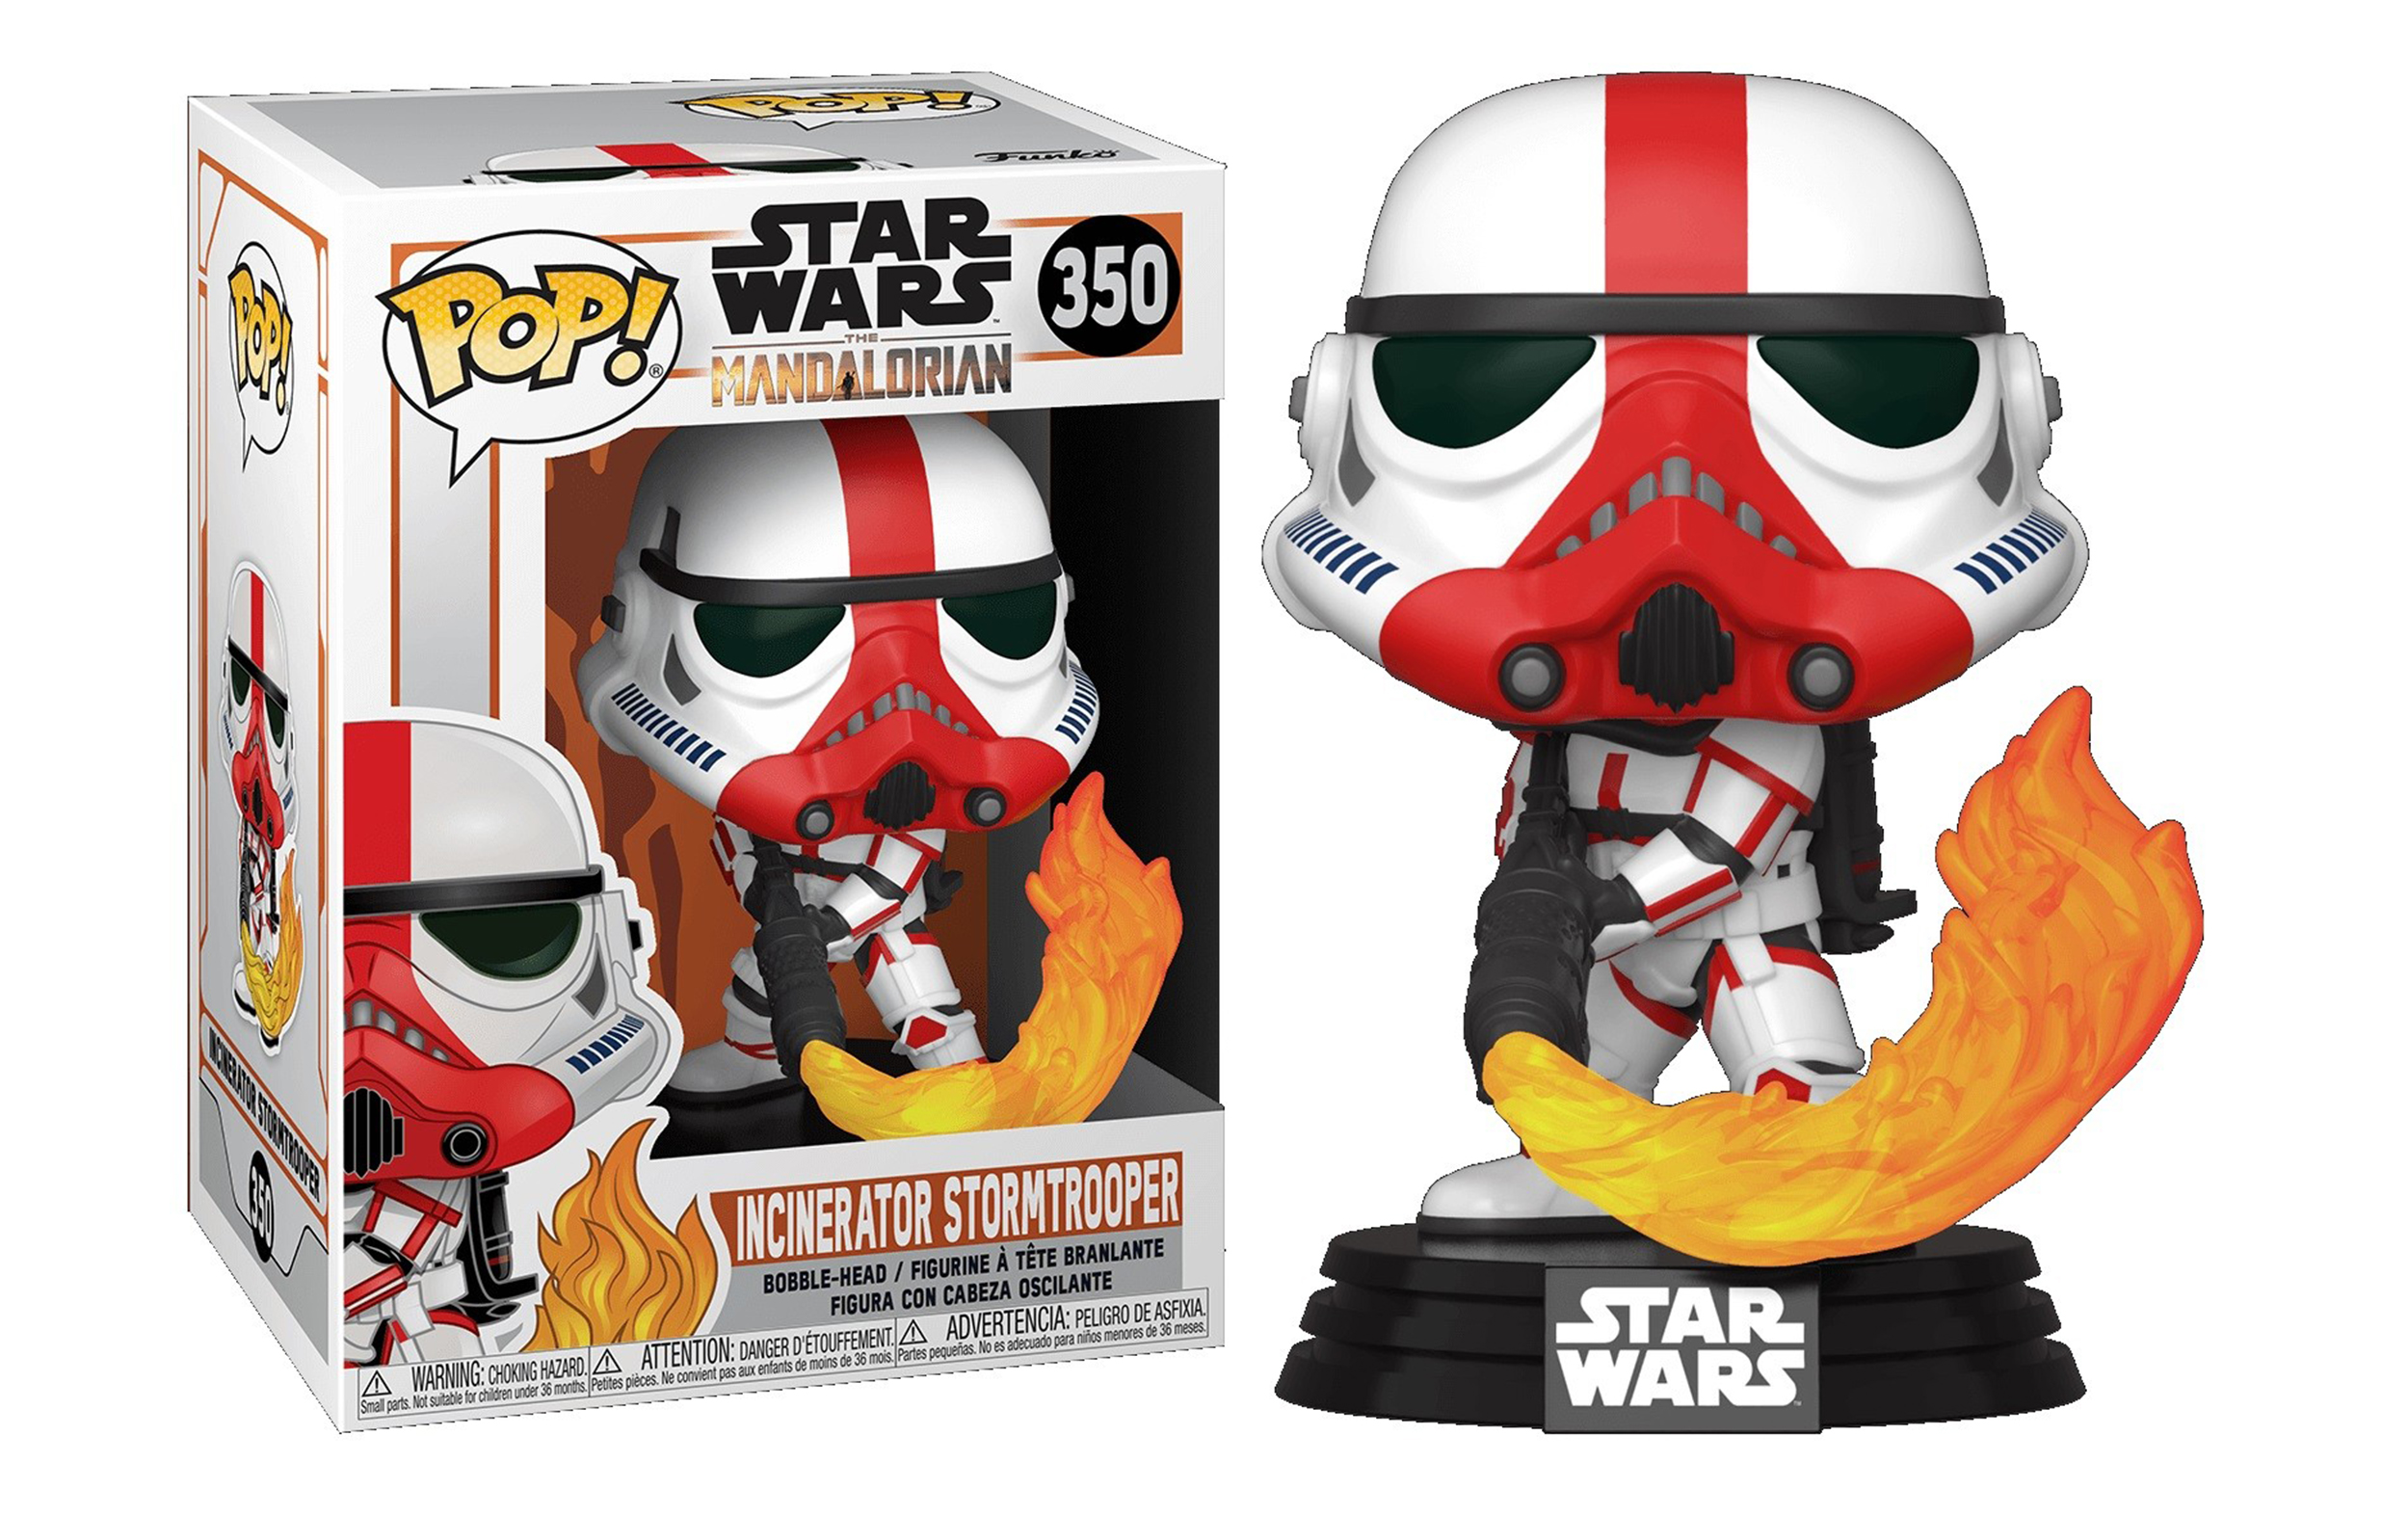 Star Wars The Mandalorian Incinerator Strormtrooper 350 Funko POP Vinyl Figure